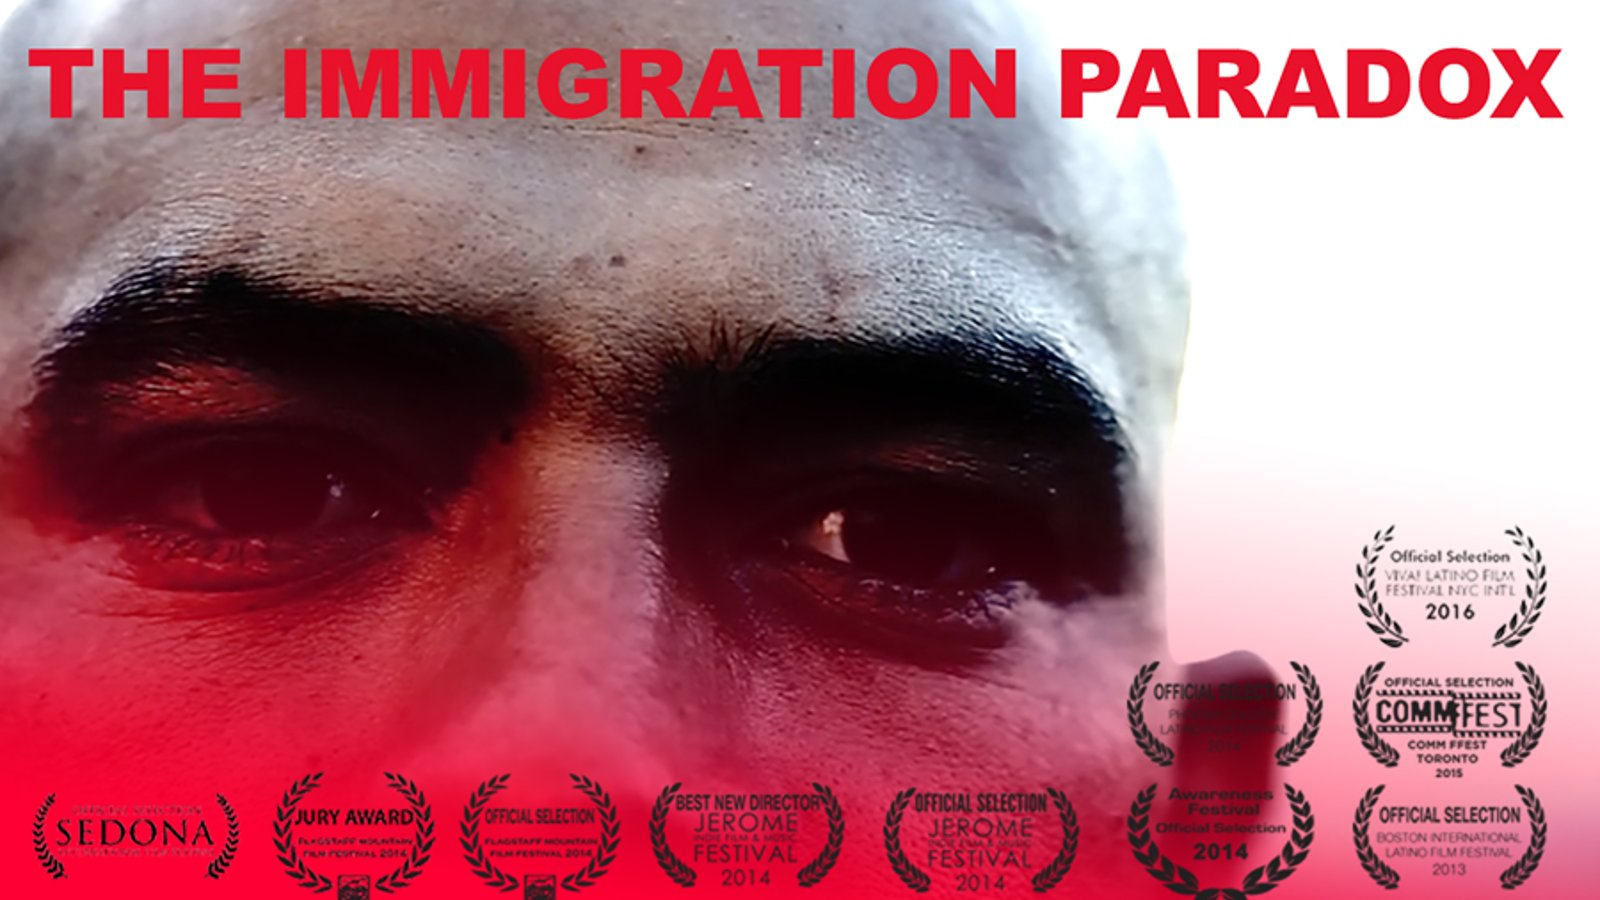 The Immigration Paradox - Diverse Stories Reveal Root Causes of Mass Migration